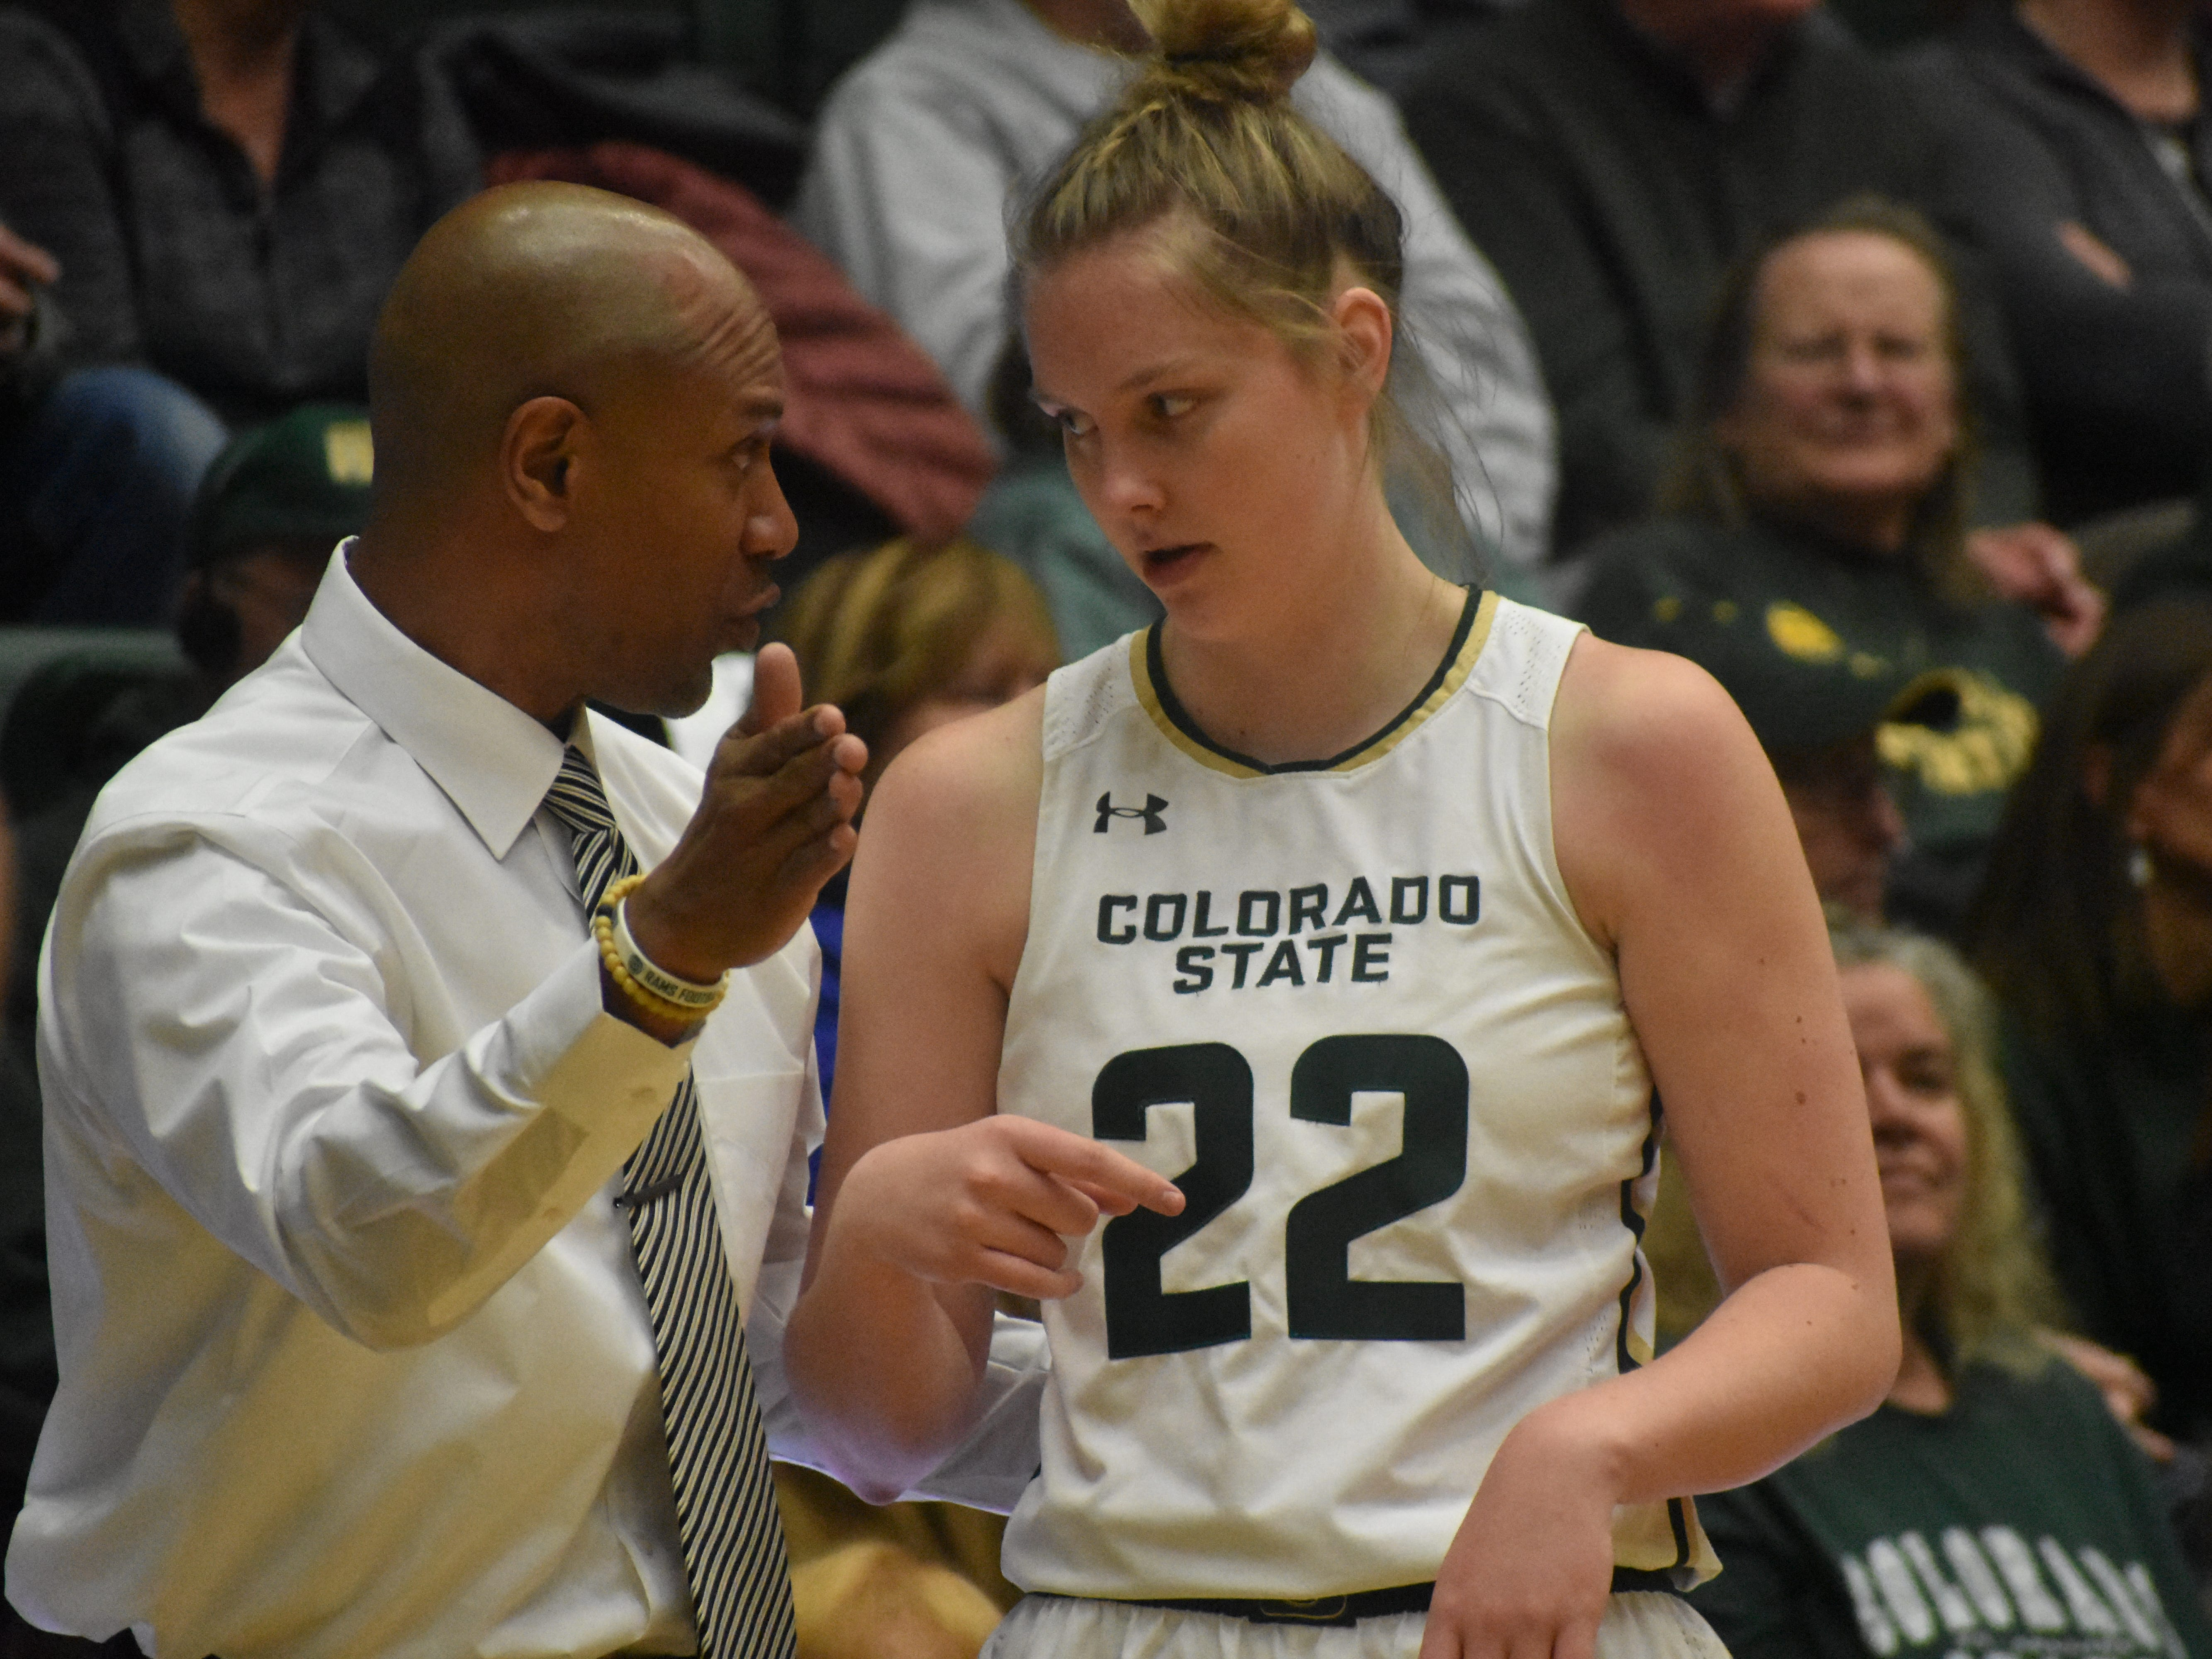 Colorado State basketball guard Lauren Brocke talks with assitant coach Rico Burkett during Wednesday's game against UNLV at Moby Arena.